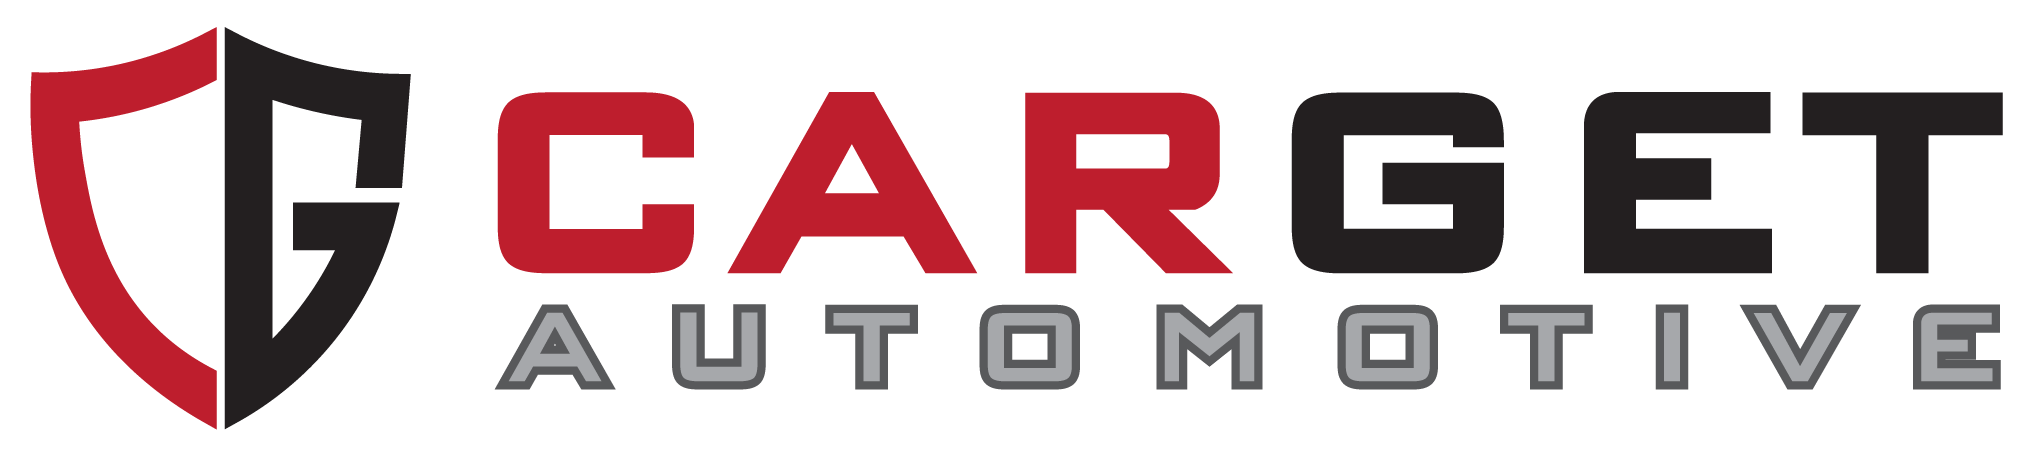 Carget Automotive